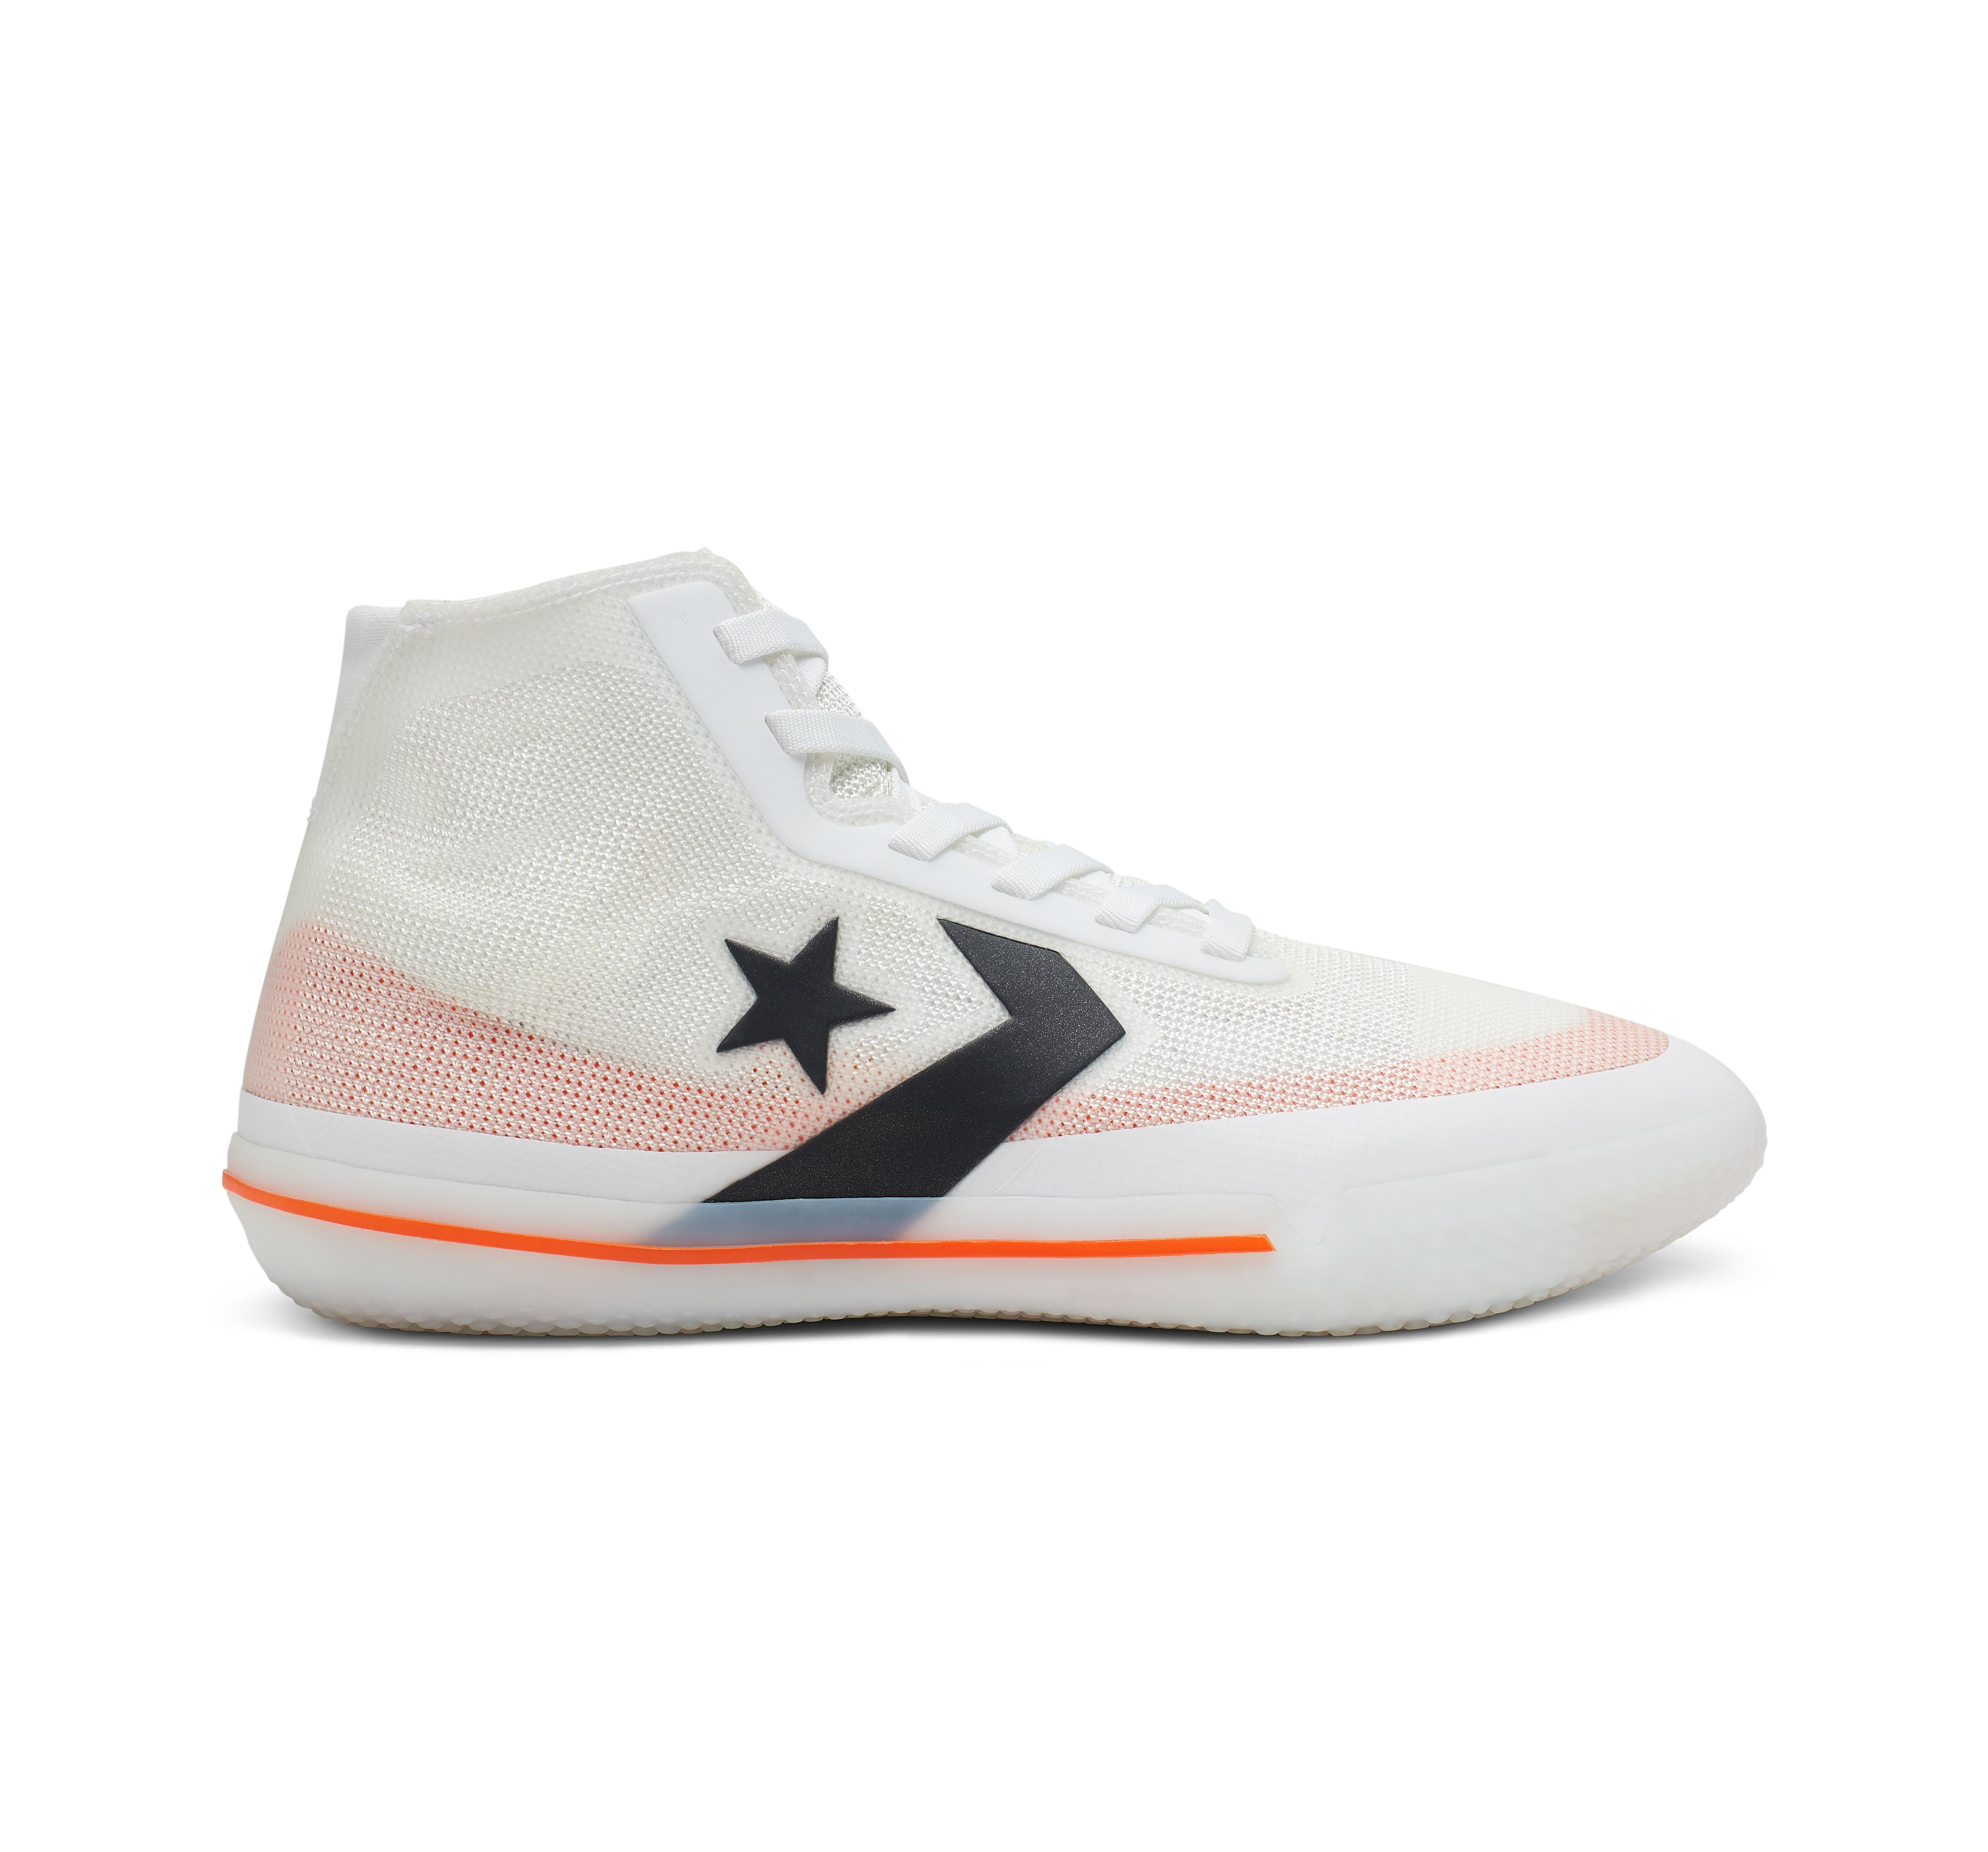 All Star Pro BB High Top | Basketball shoes, Converse design